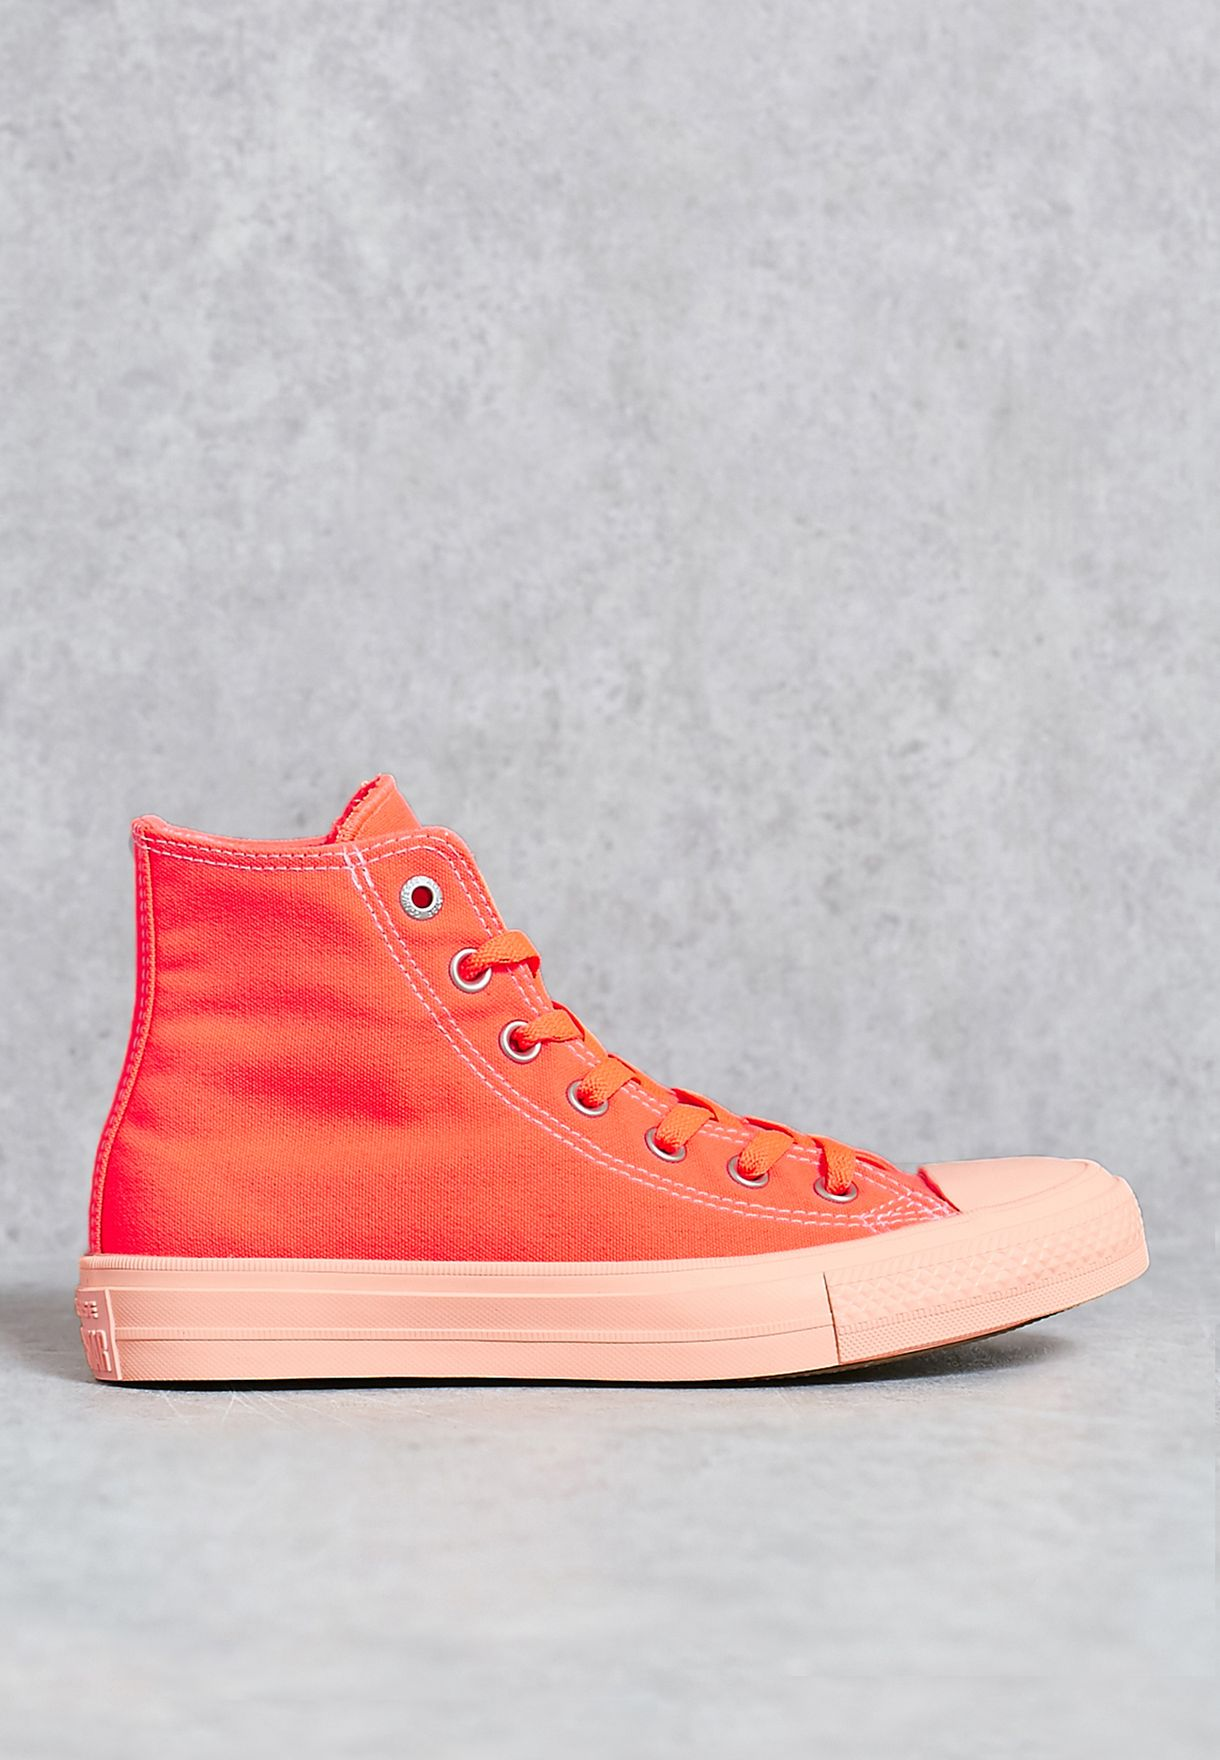 fef91ed26644 Shop Converse neon Chuck Taylor All Star II Pastels 155724C-830 for ...